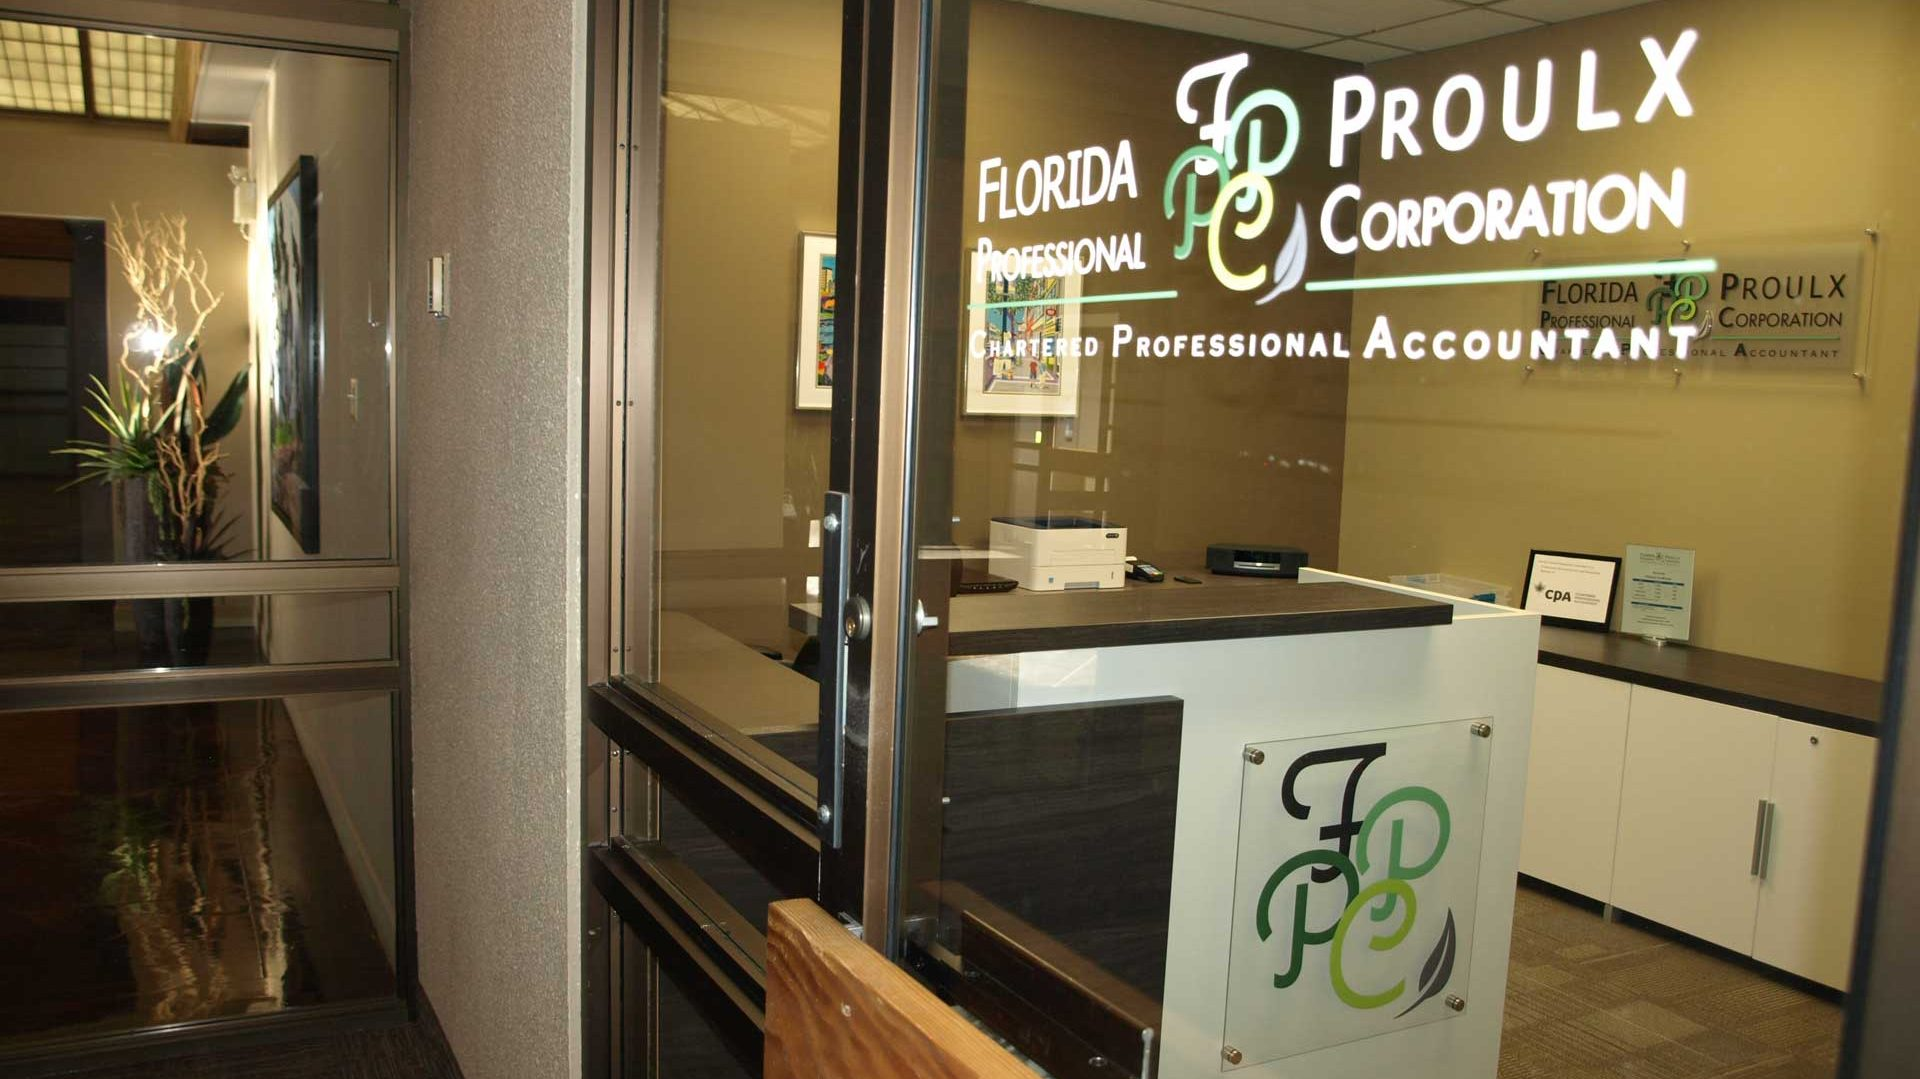 Florida Proulx | Chartered Professional Accountant